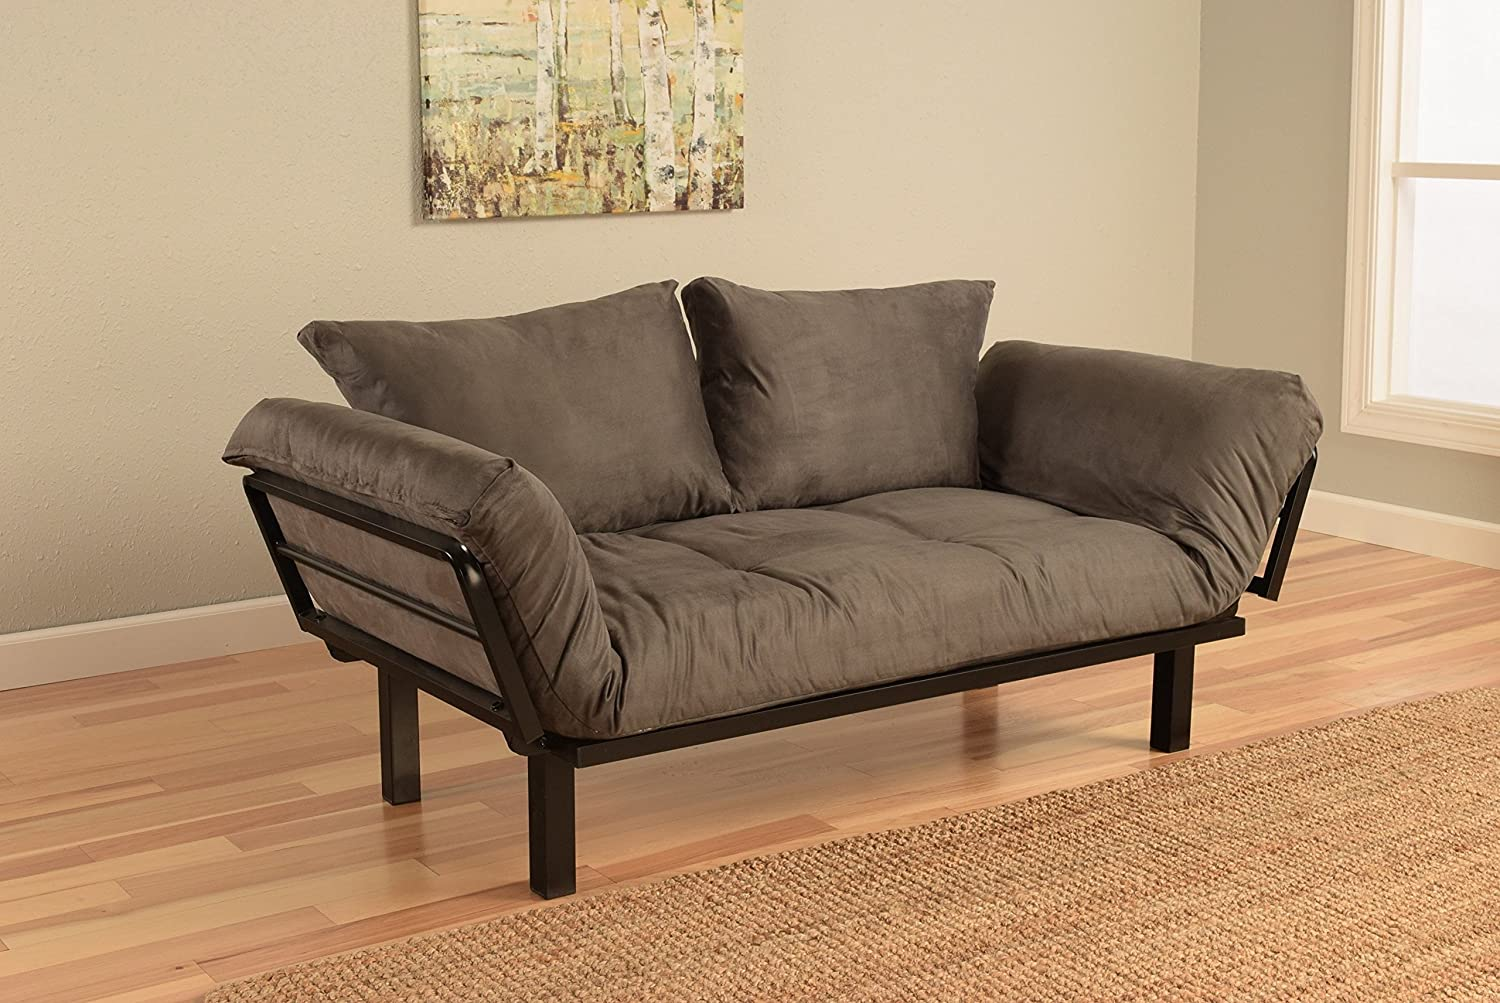 wonderful futon furniture minimalist futons living bed sofa of walmart using ideas lovely beds design and room best unique